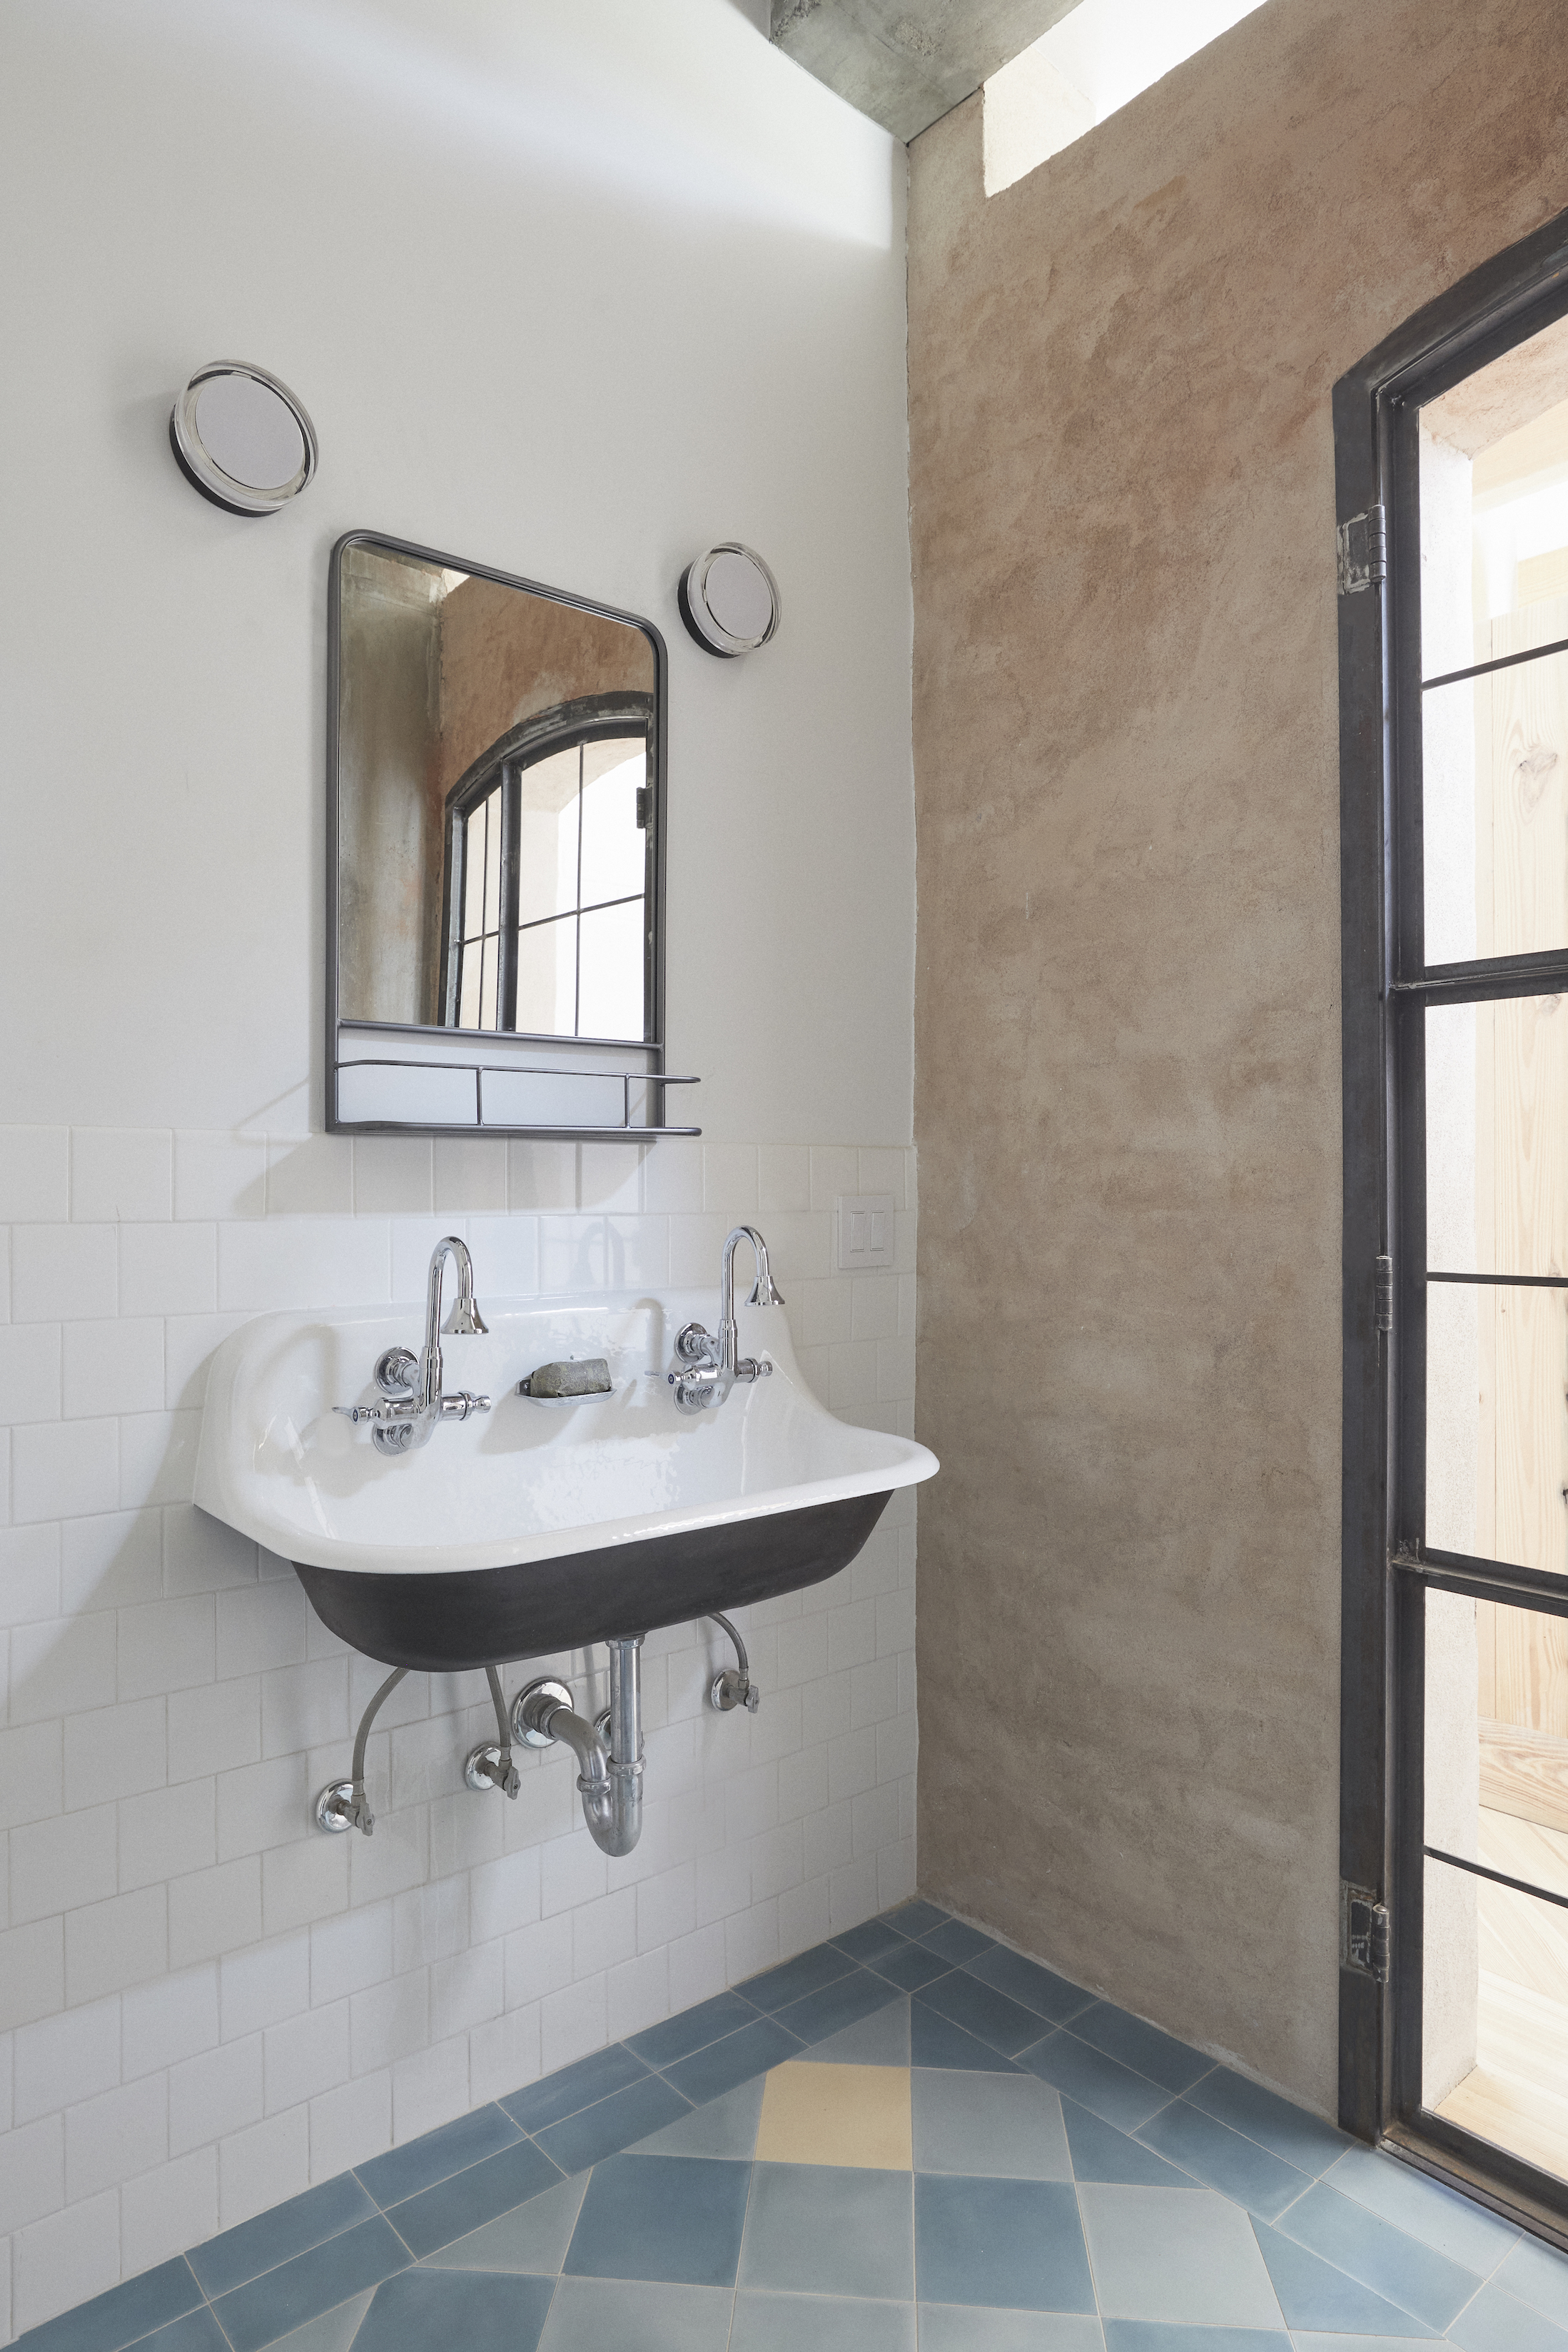 the walls are painted, tiled, or finished with pigmented bagged brick (a mix of 9